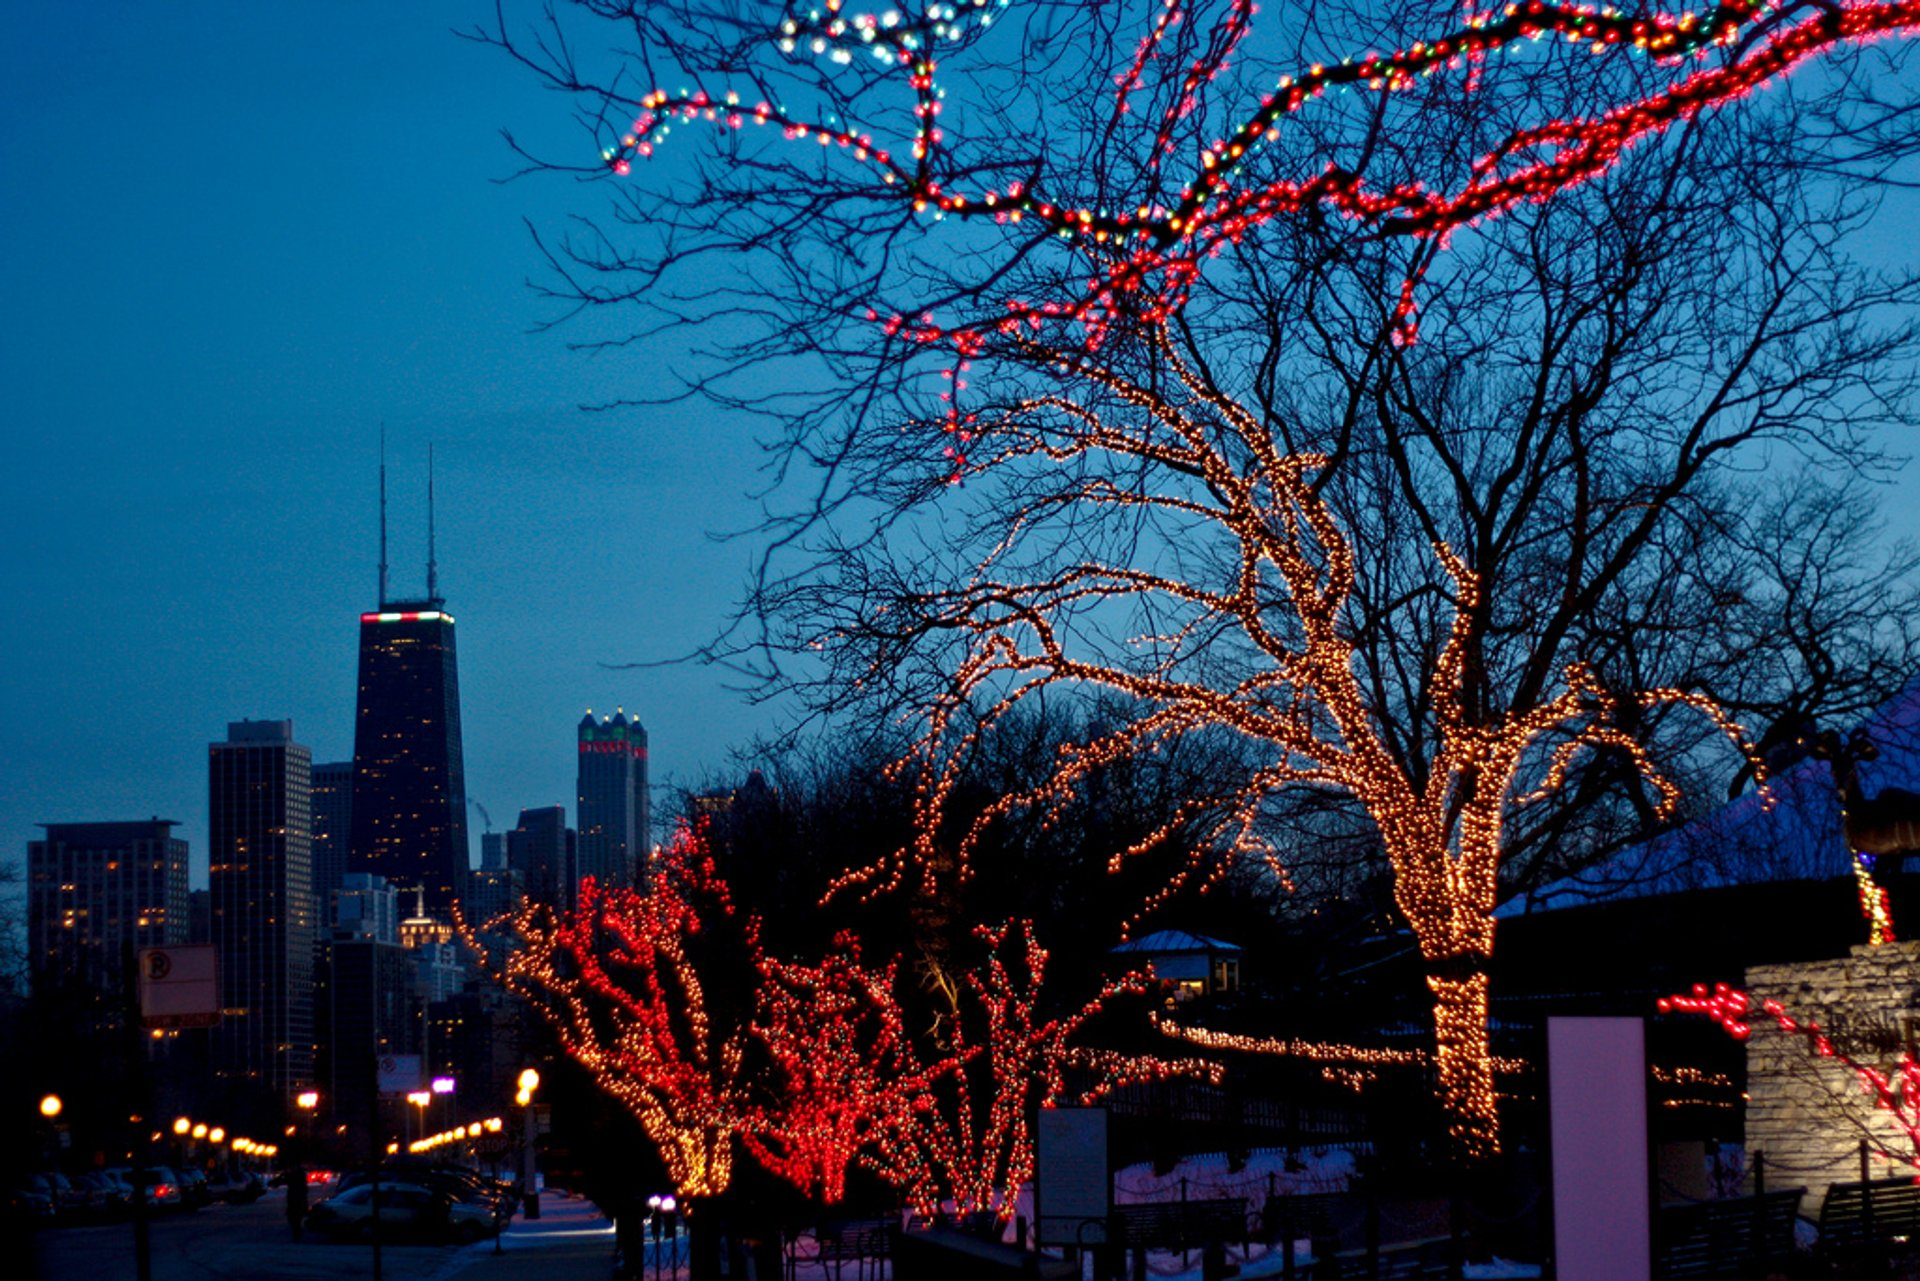 ZooLights in Chicago 2020 - Best Time